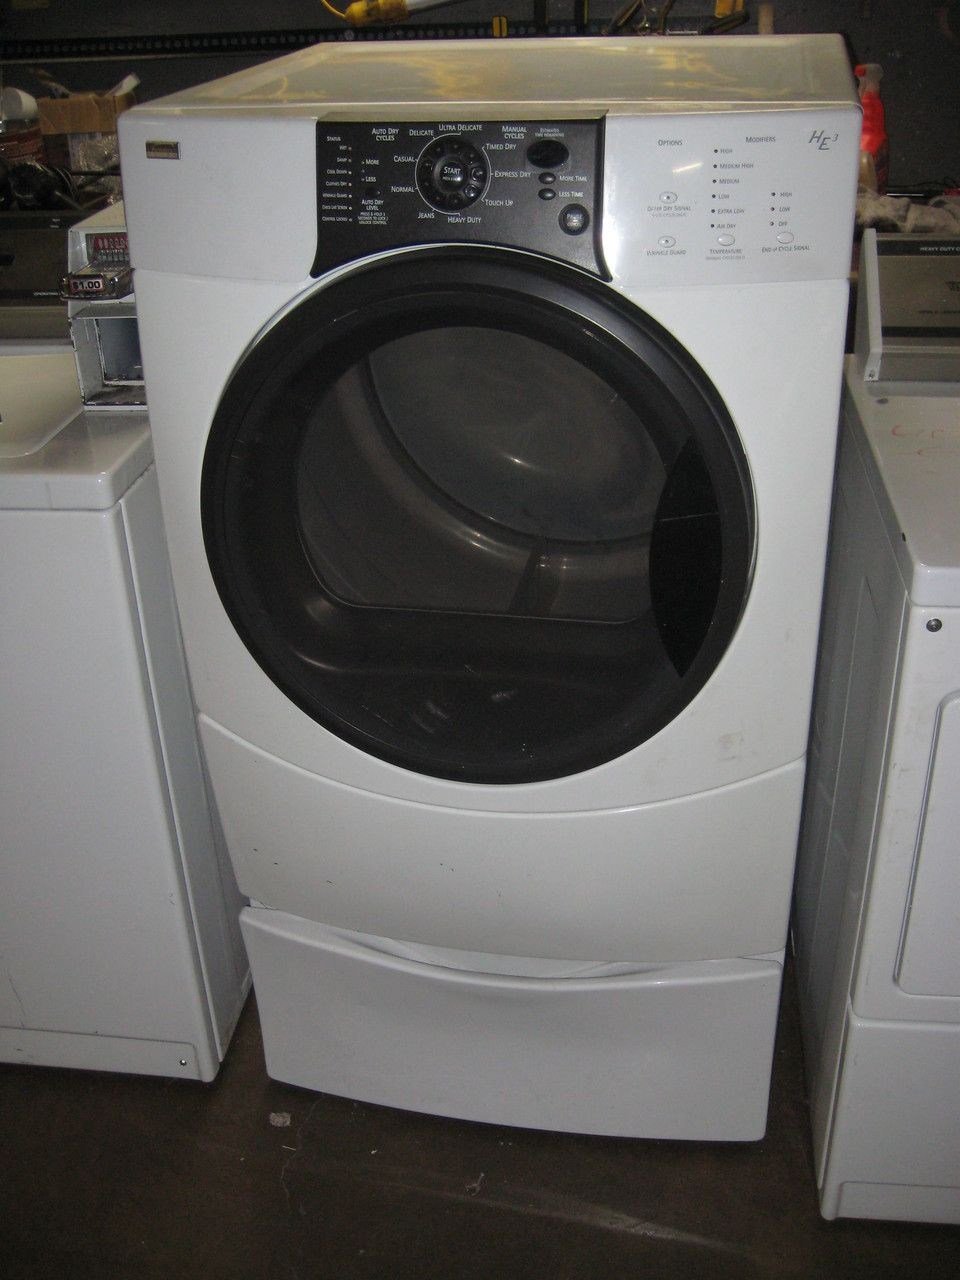 kenmore elite washer and dryer white. appliance city - kenmore elite by whirlpool he3 front load gas dryer pedestal drawer loaded with options 9 cycle ( 6 auto, 3 manual) white , $549.00 kenmore elite washer and dryer white